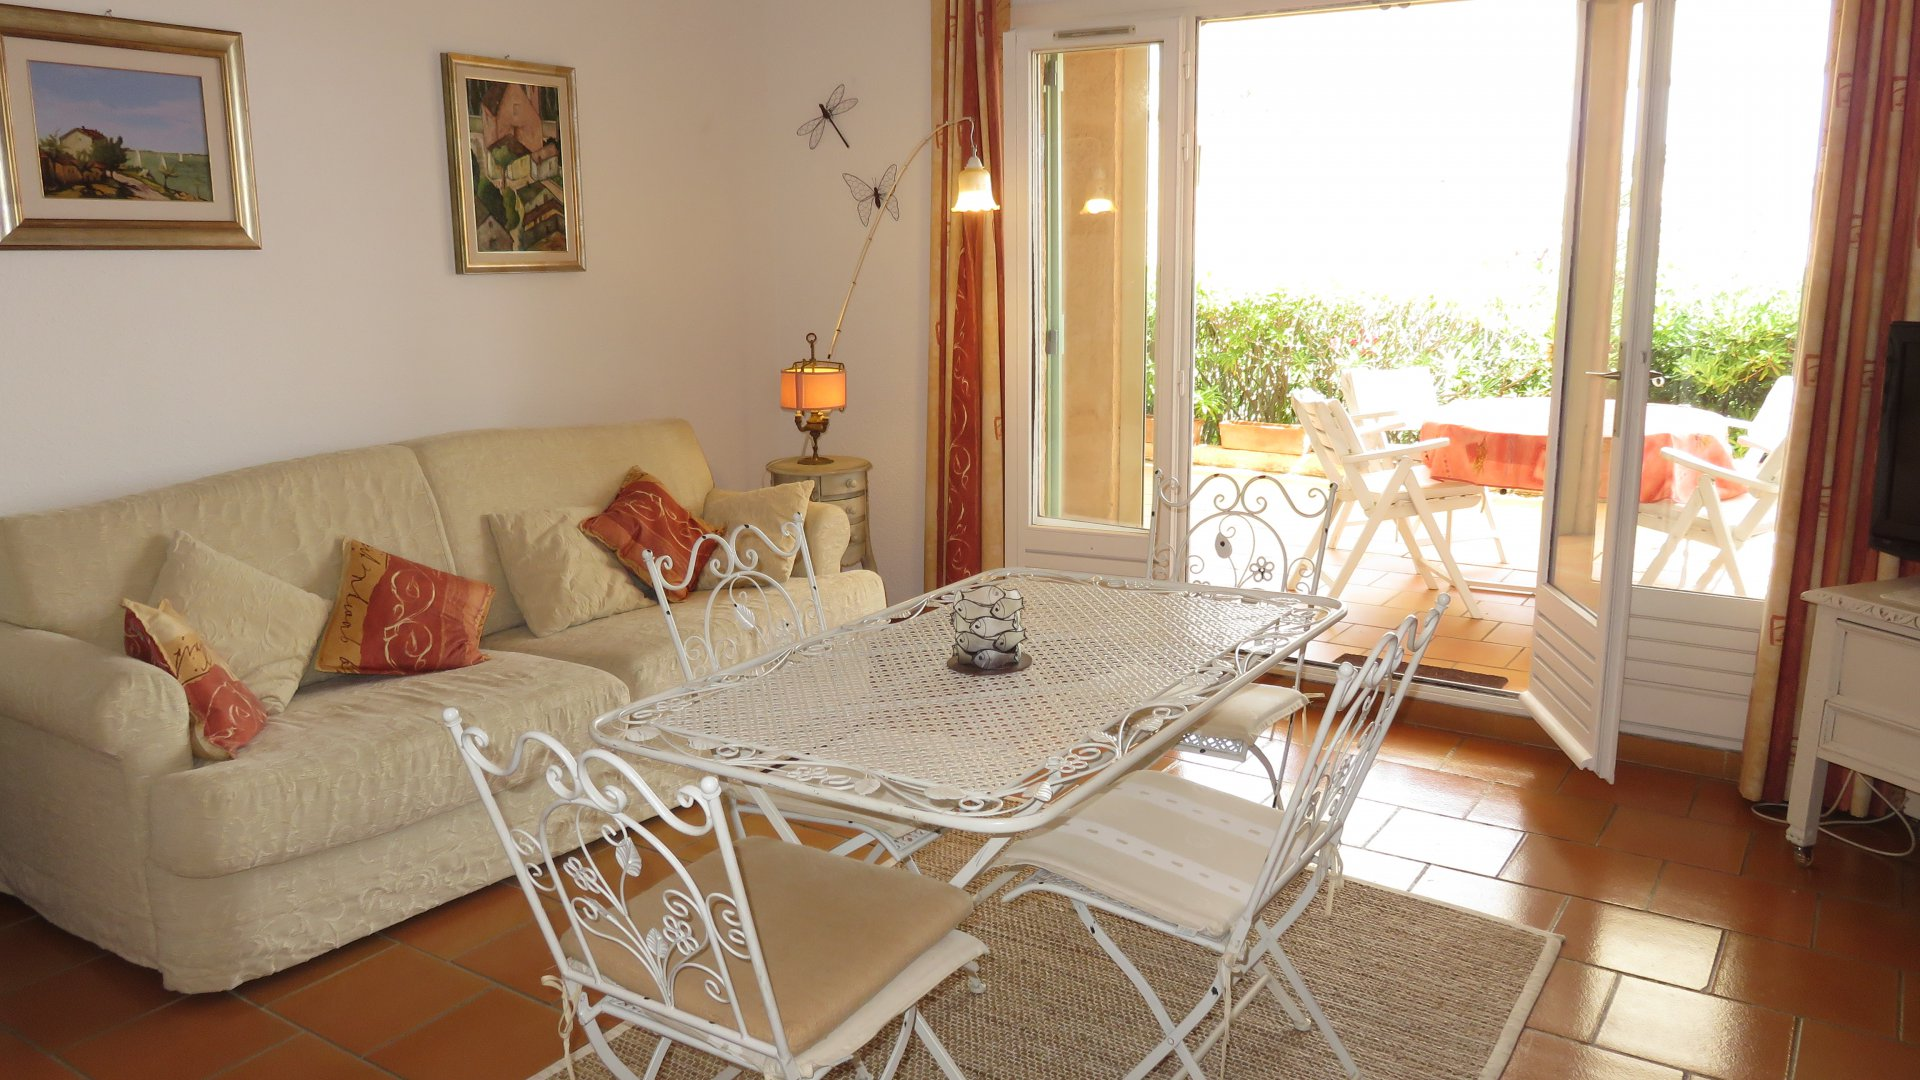 Provencal farmhouse of 2 rooms 50,46 m² with parking and cellar